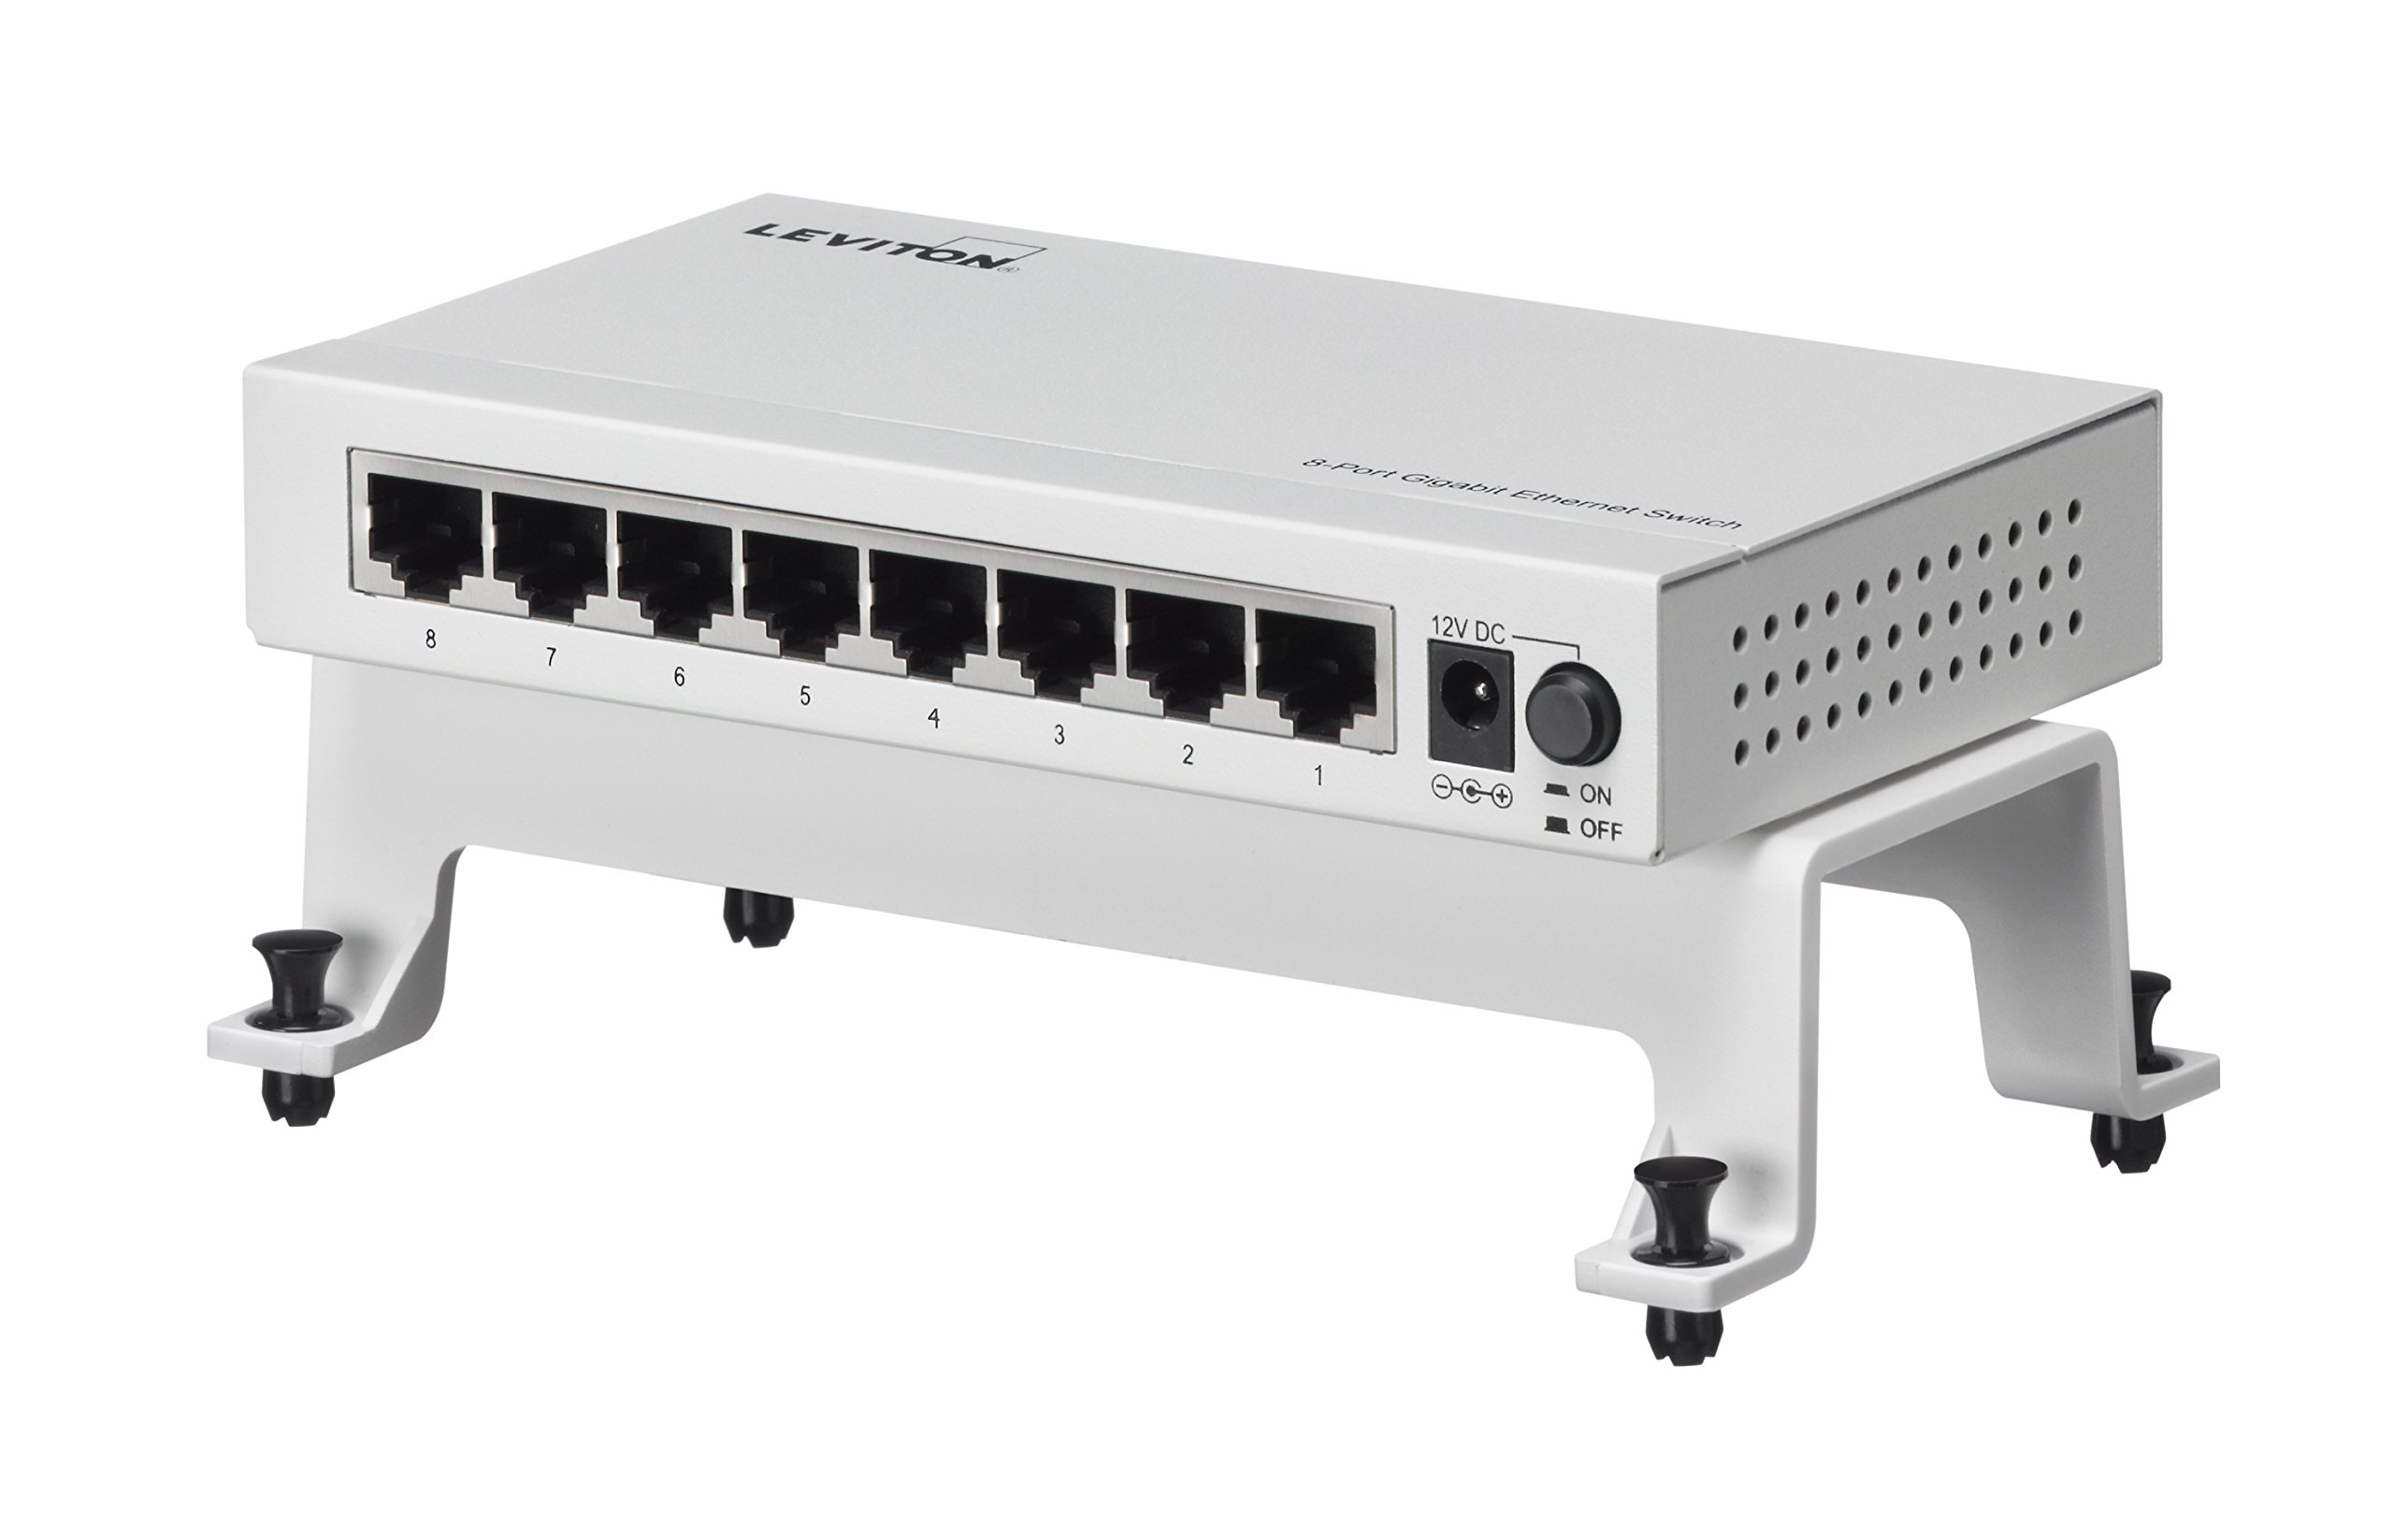 Leviton 47611-8GB 10/100/1000 Mbps 8-Port Gigabit Switch